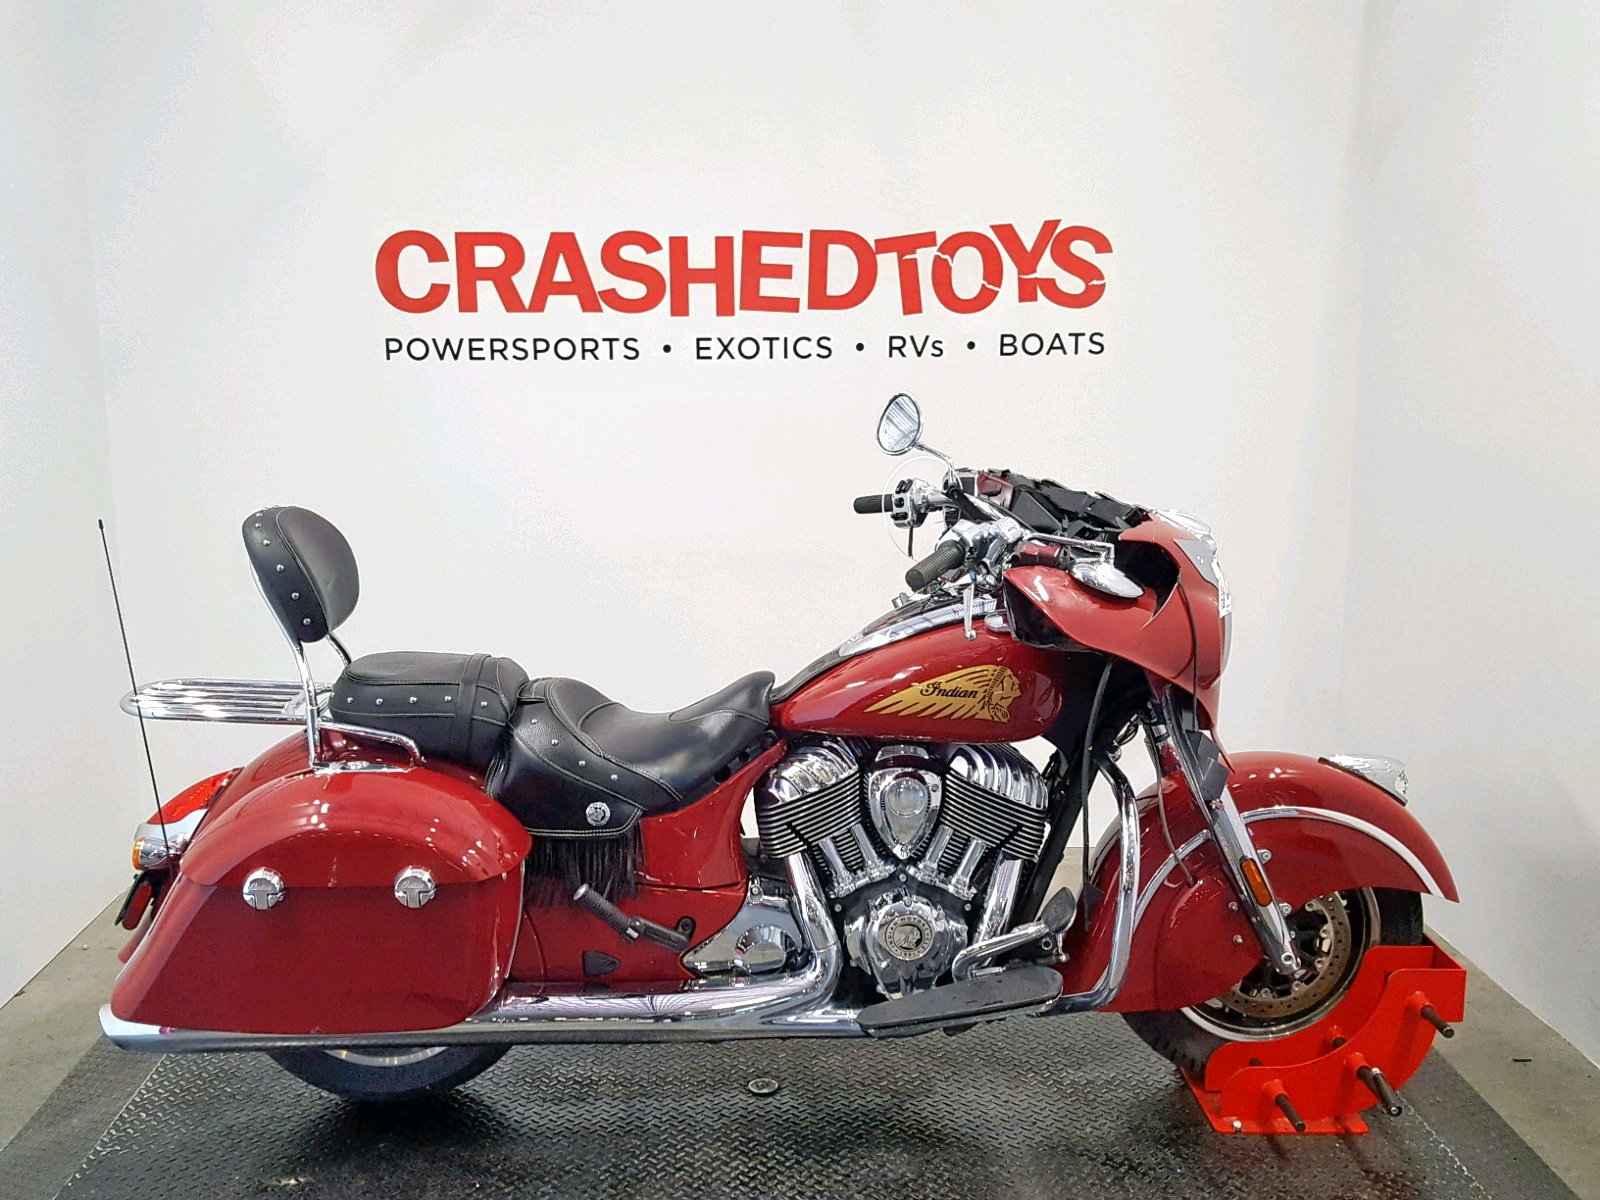 Salvage 2018 Indian Motorcycle Co. CHIEFTAIN for sale